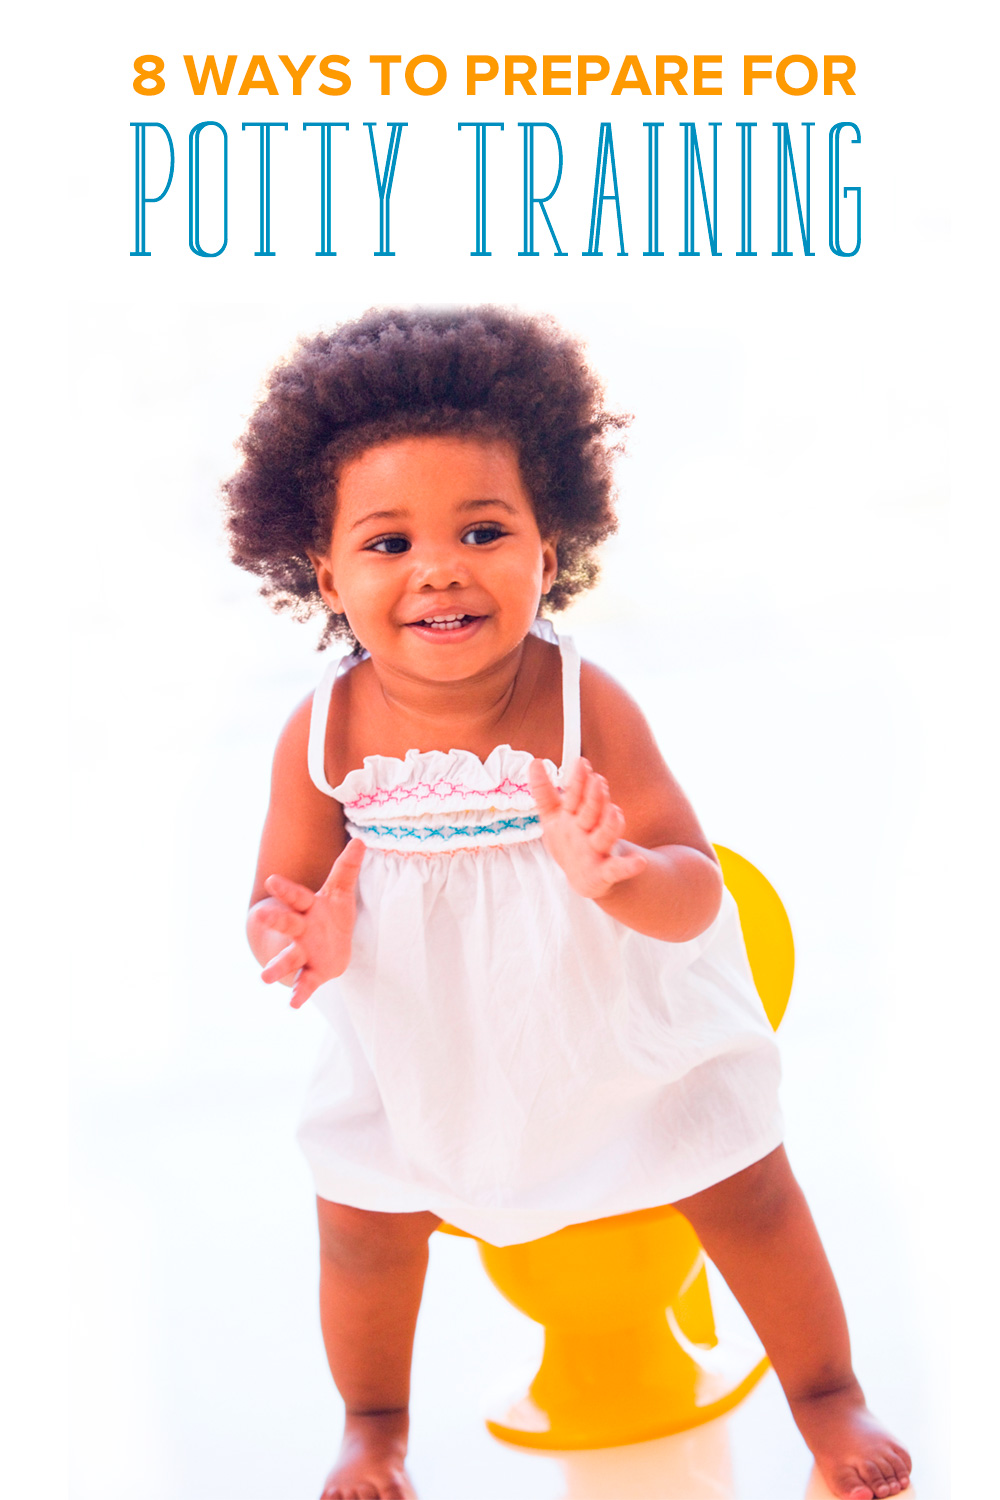 Potty training can begin long before your child sits on one. Learn how to start potty training with these 8 simple ways to get you off to a good start.